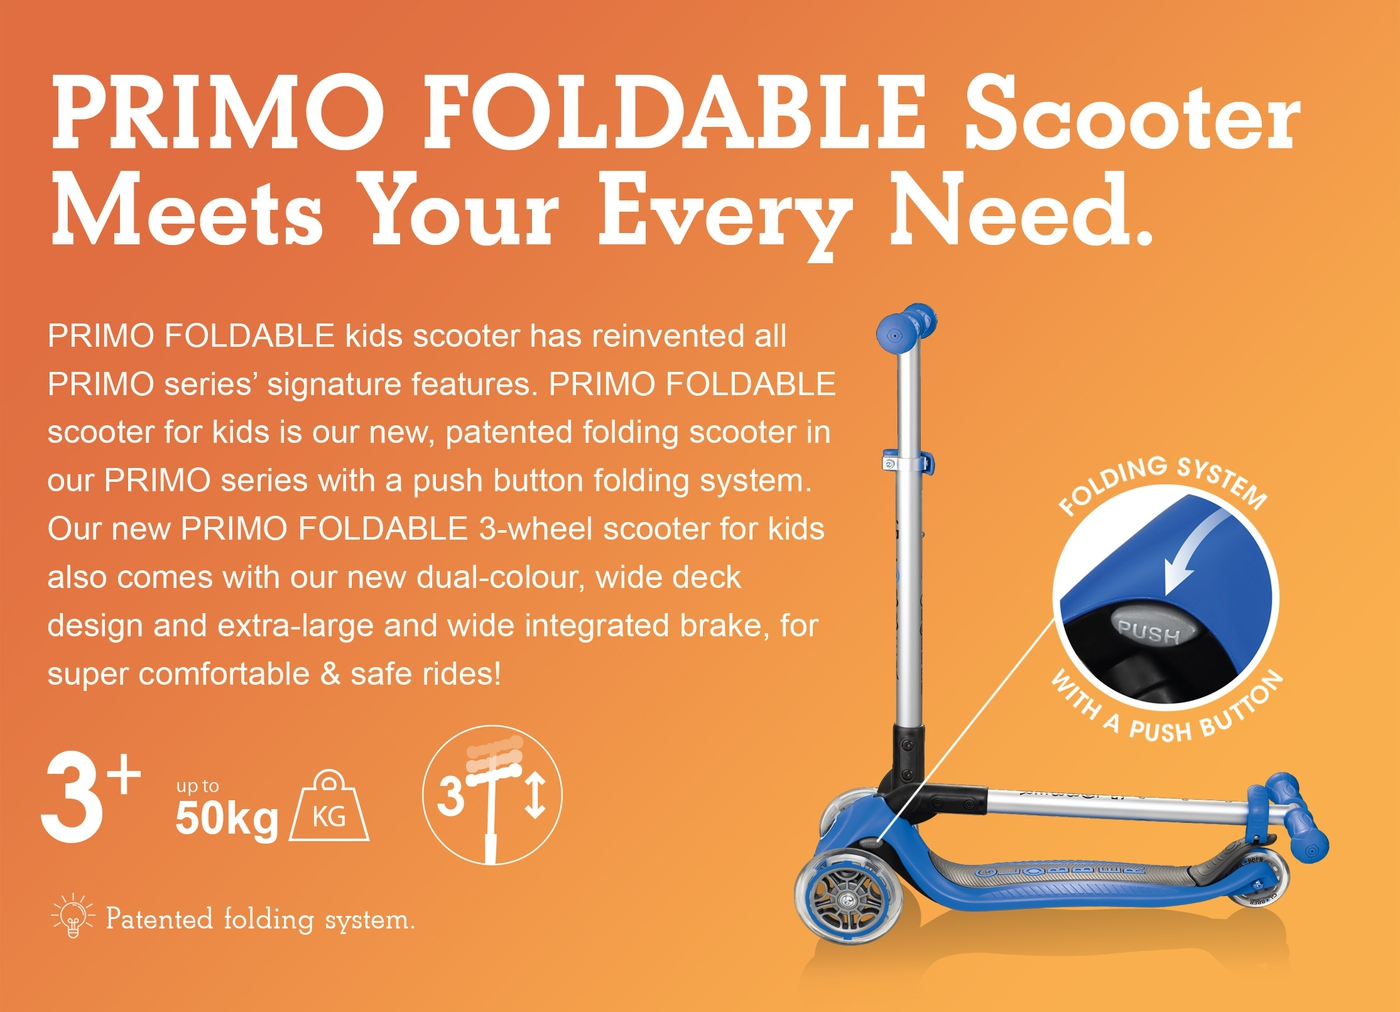 PRIMO FOLDABLE Scooter Meets Your Every Need.